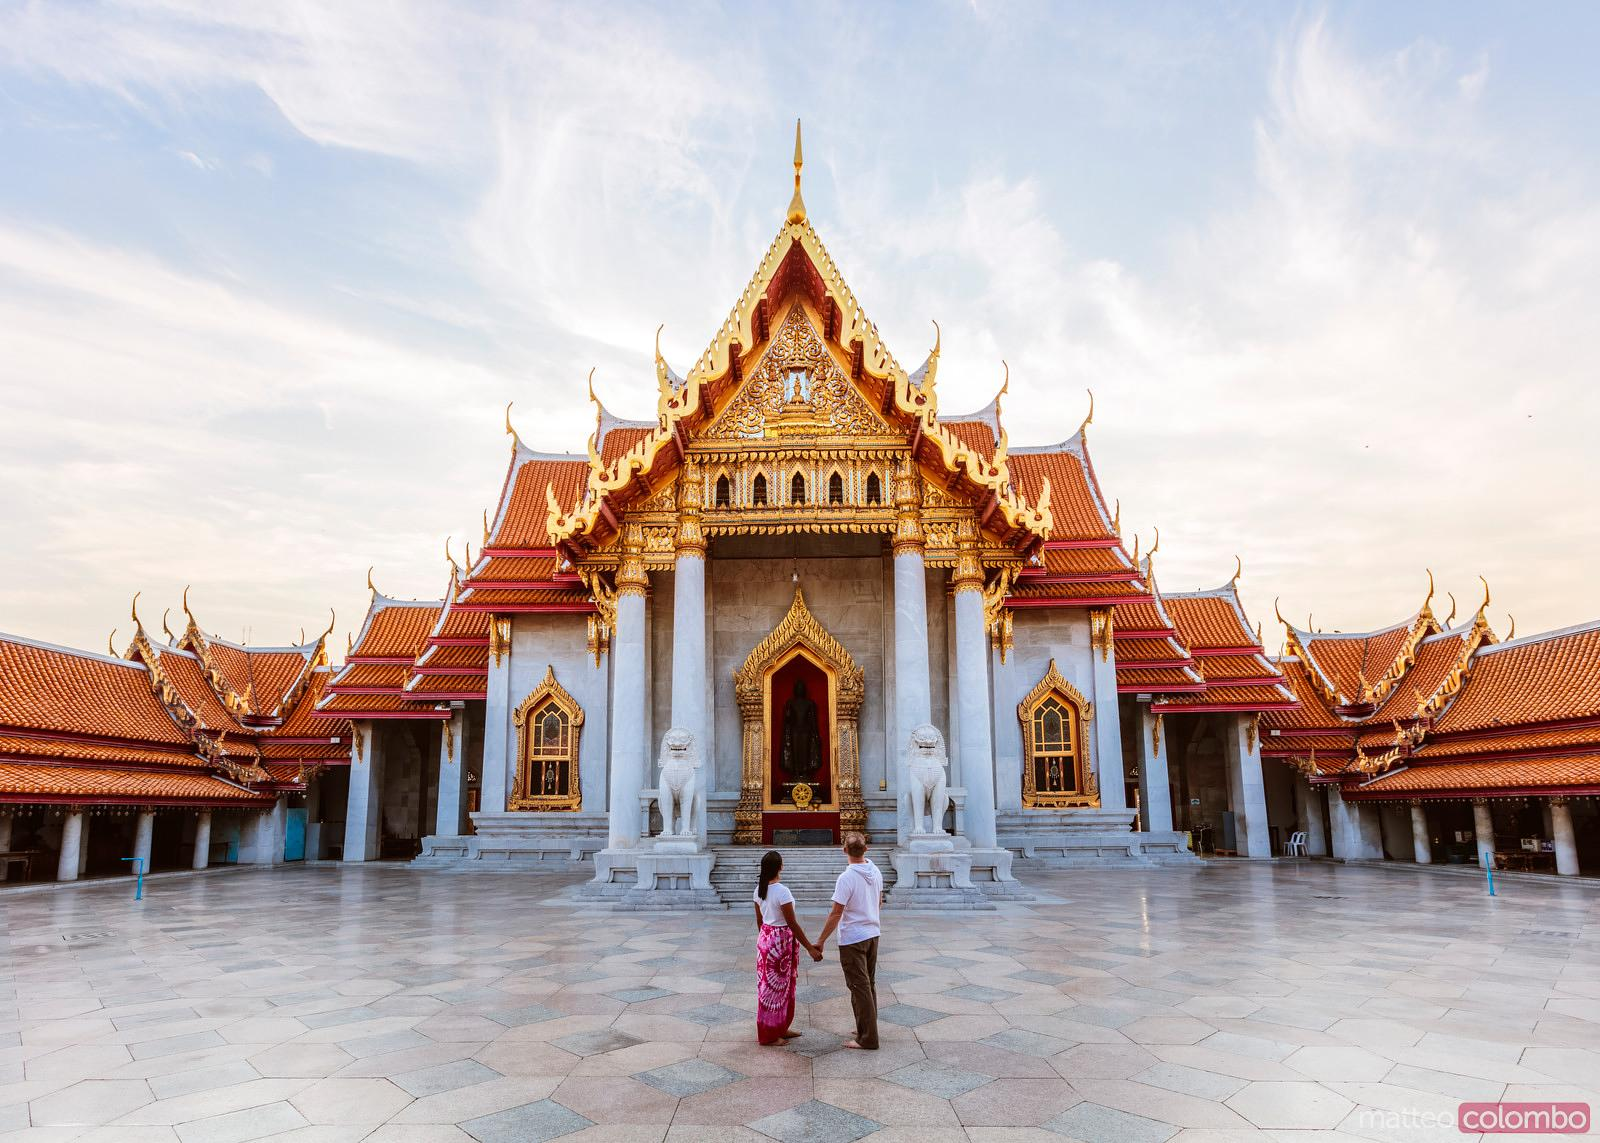 Tourist couple visiting the Marble Temple, Bangkok, Thailand